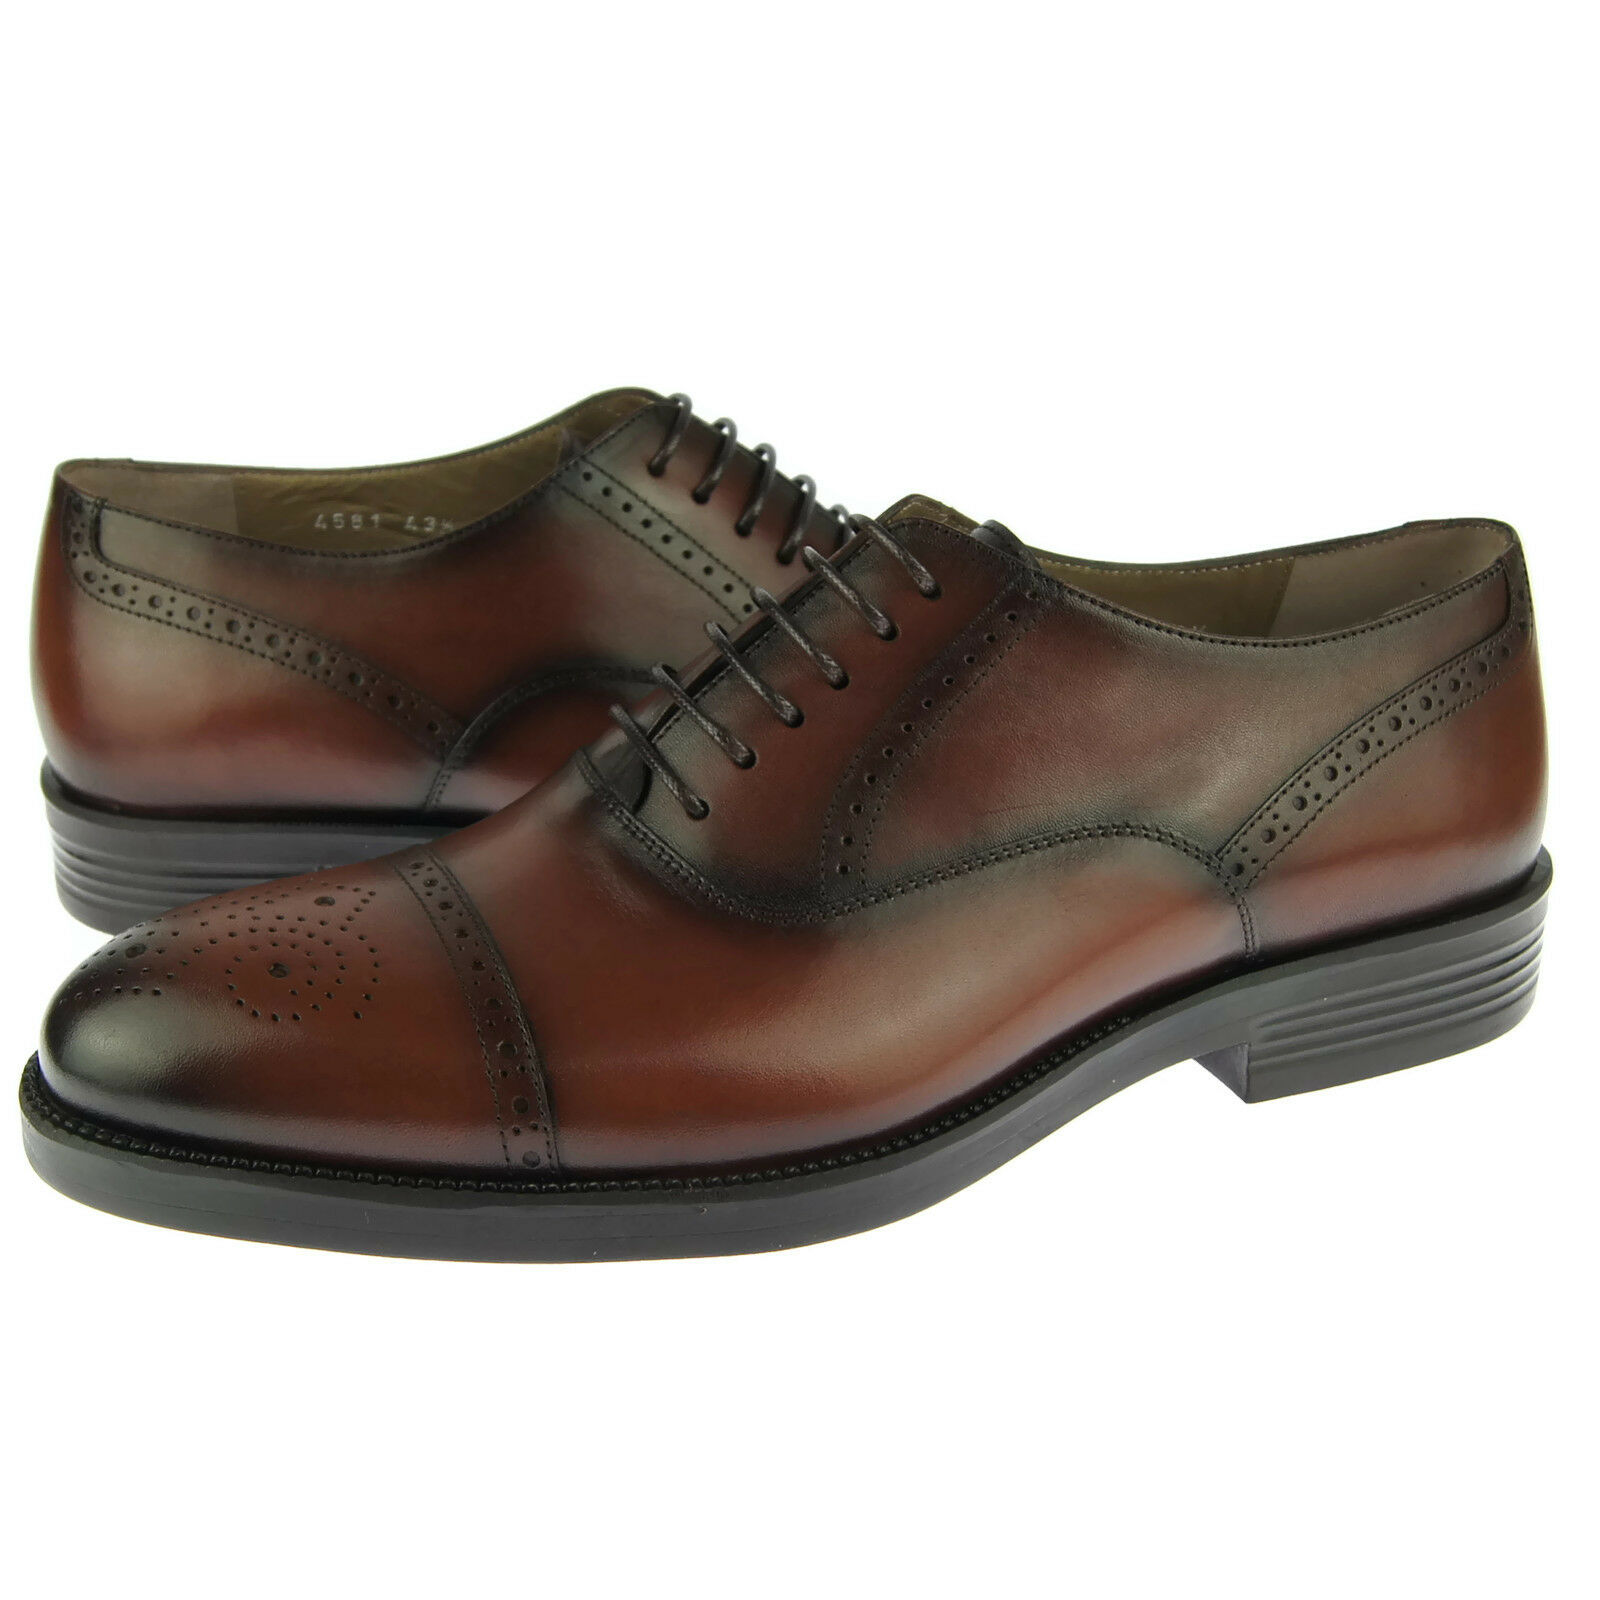 Corrente 4581 Cap Toe Oxford, Men's Dress Casual Leather shoes, Tobacco